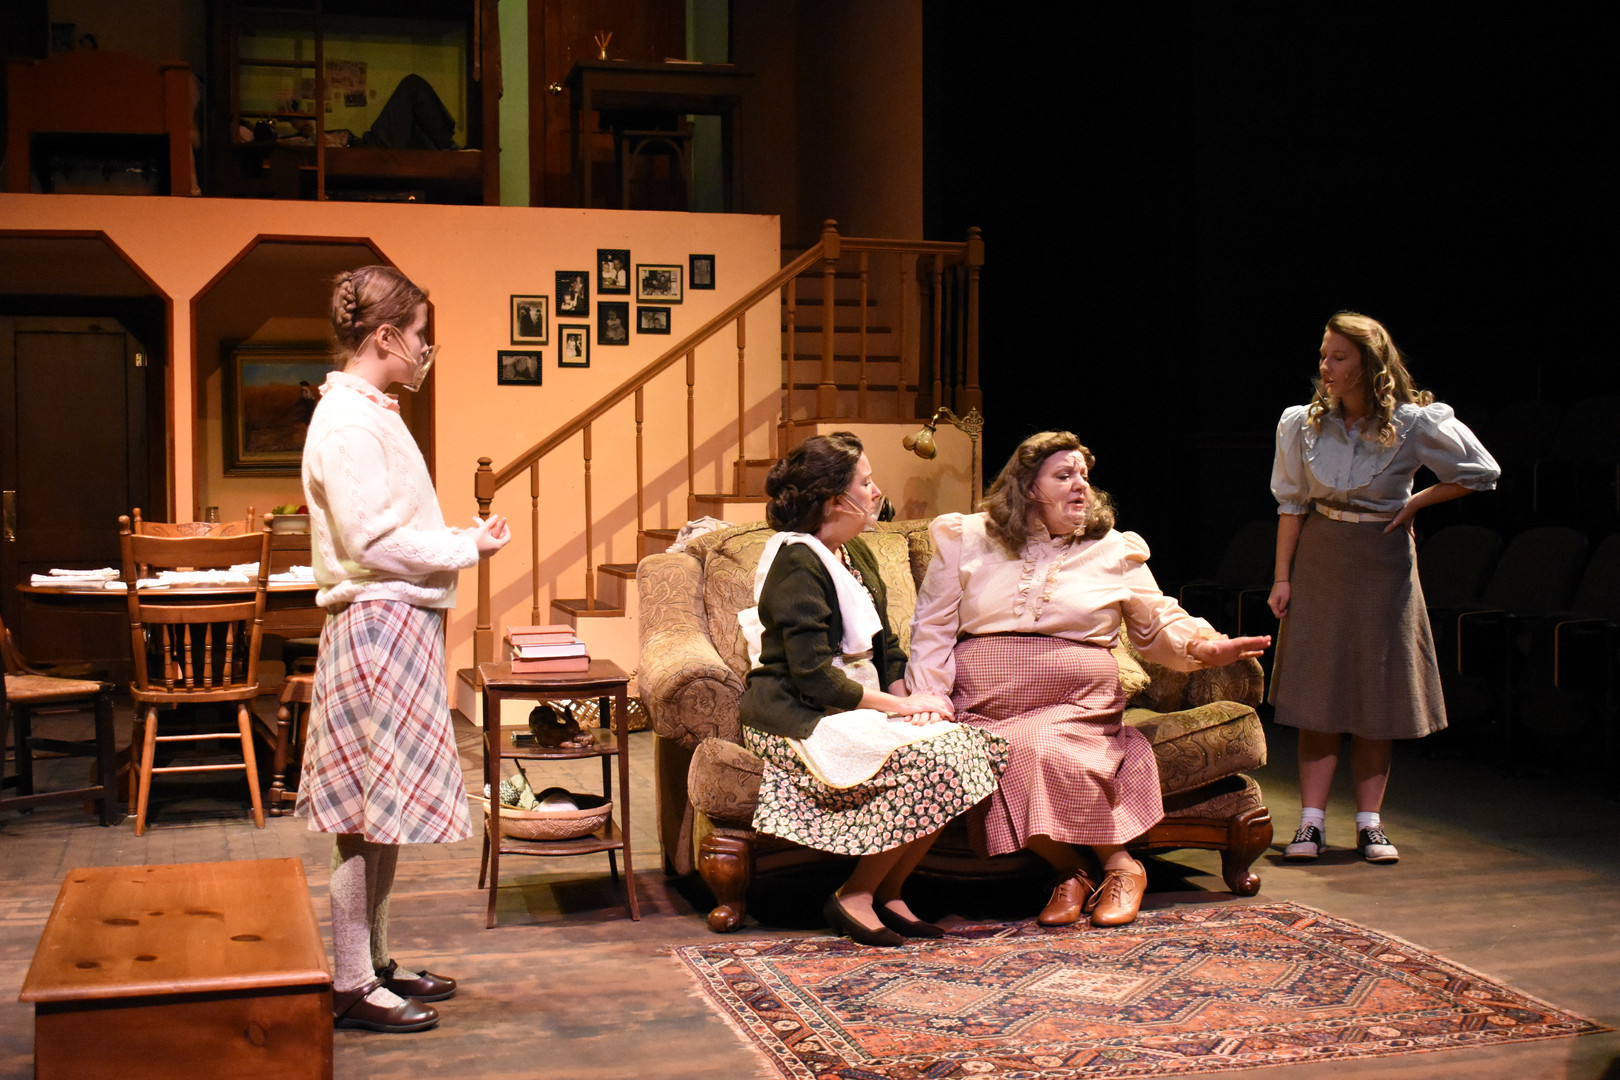 """Brighton Beach Memoirs."" Community Theatre Leage, Williamsport, PA. 2020 Director: Jonathan Hetler Costume Design: William A Young (Left to Right) Hannah Bastian as Laurie, Marie Fox as Kate, Samantha Storm as Blanche, Sloan Wood as Nora"